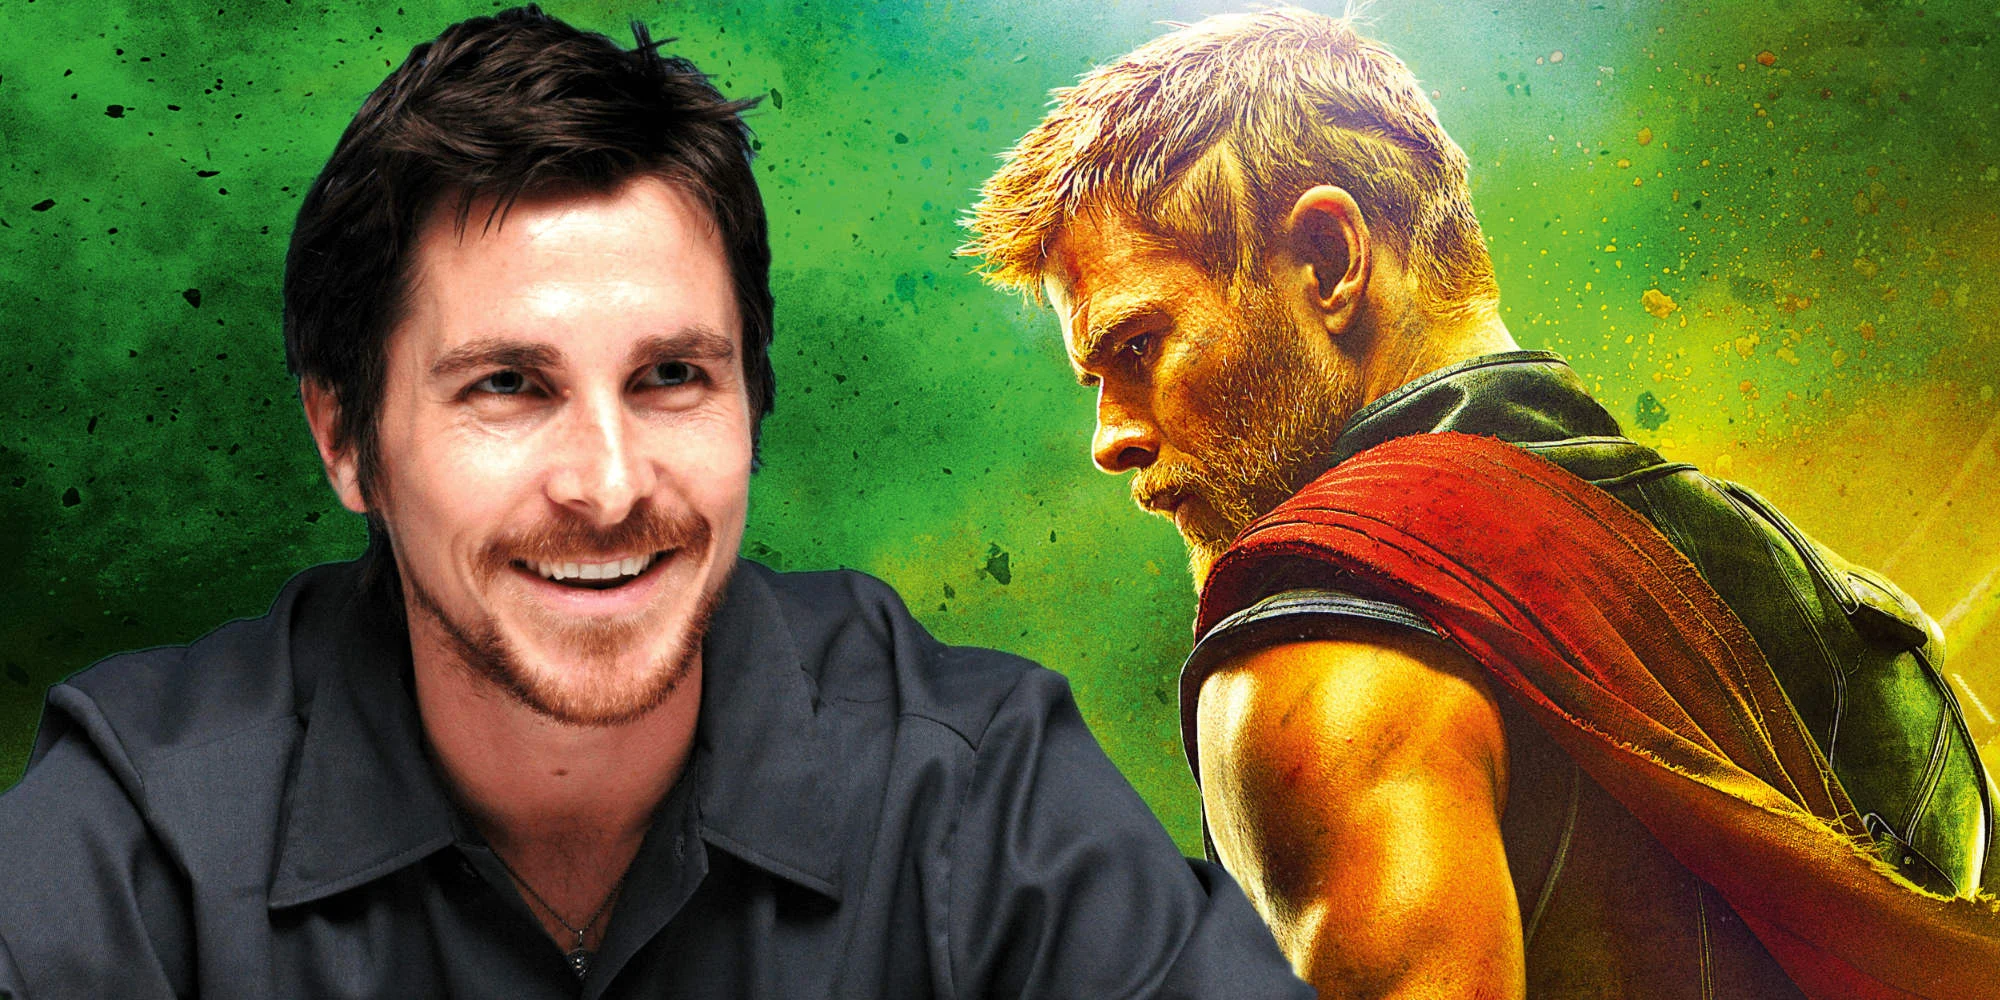 La secuela Thor: Love and Thunder quiere fichar a Christian Bale